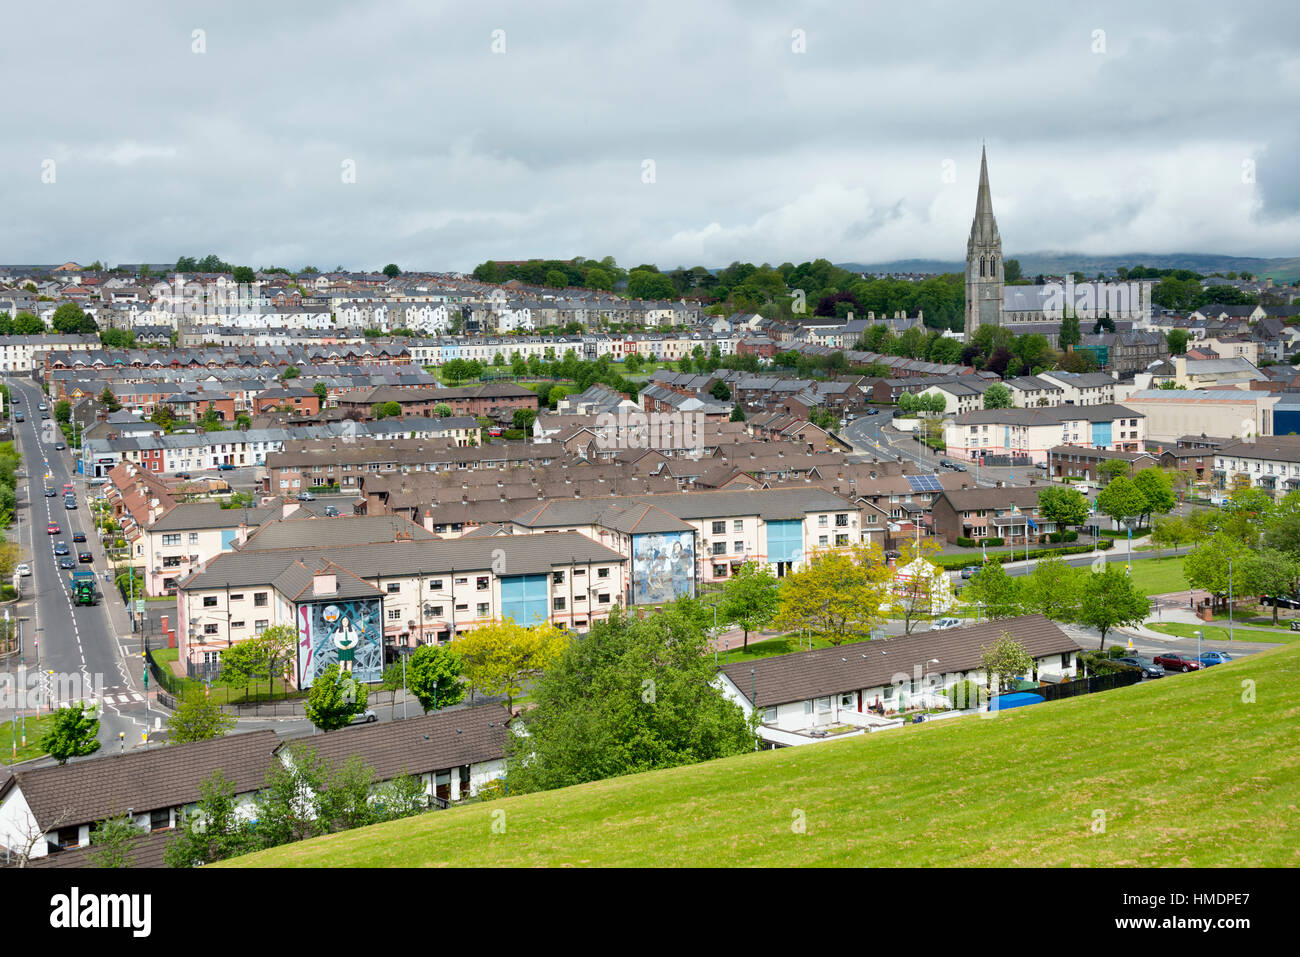 Visit Londonderry (or Derry) in Northern Ireland, United